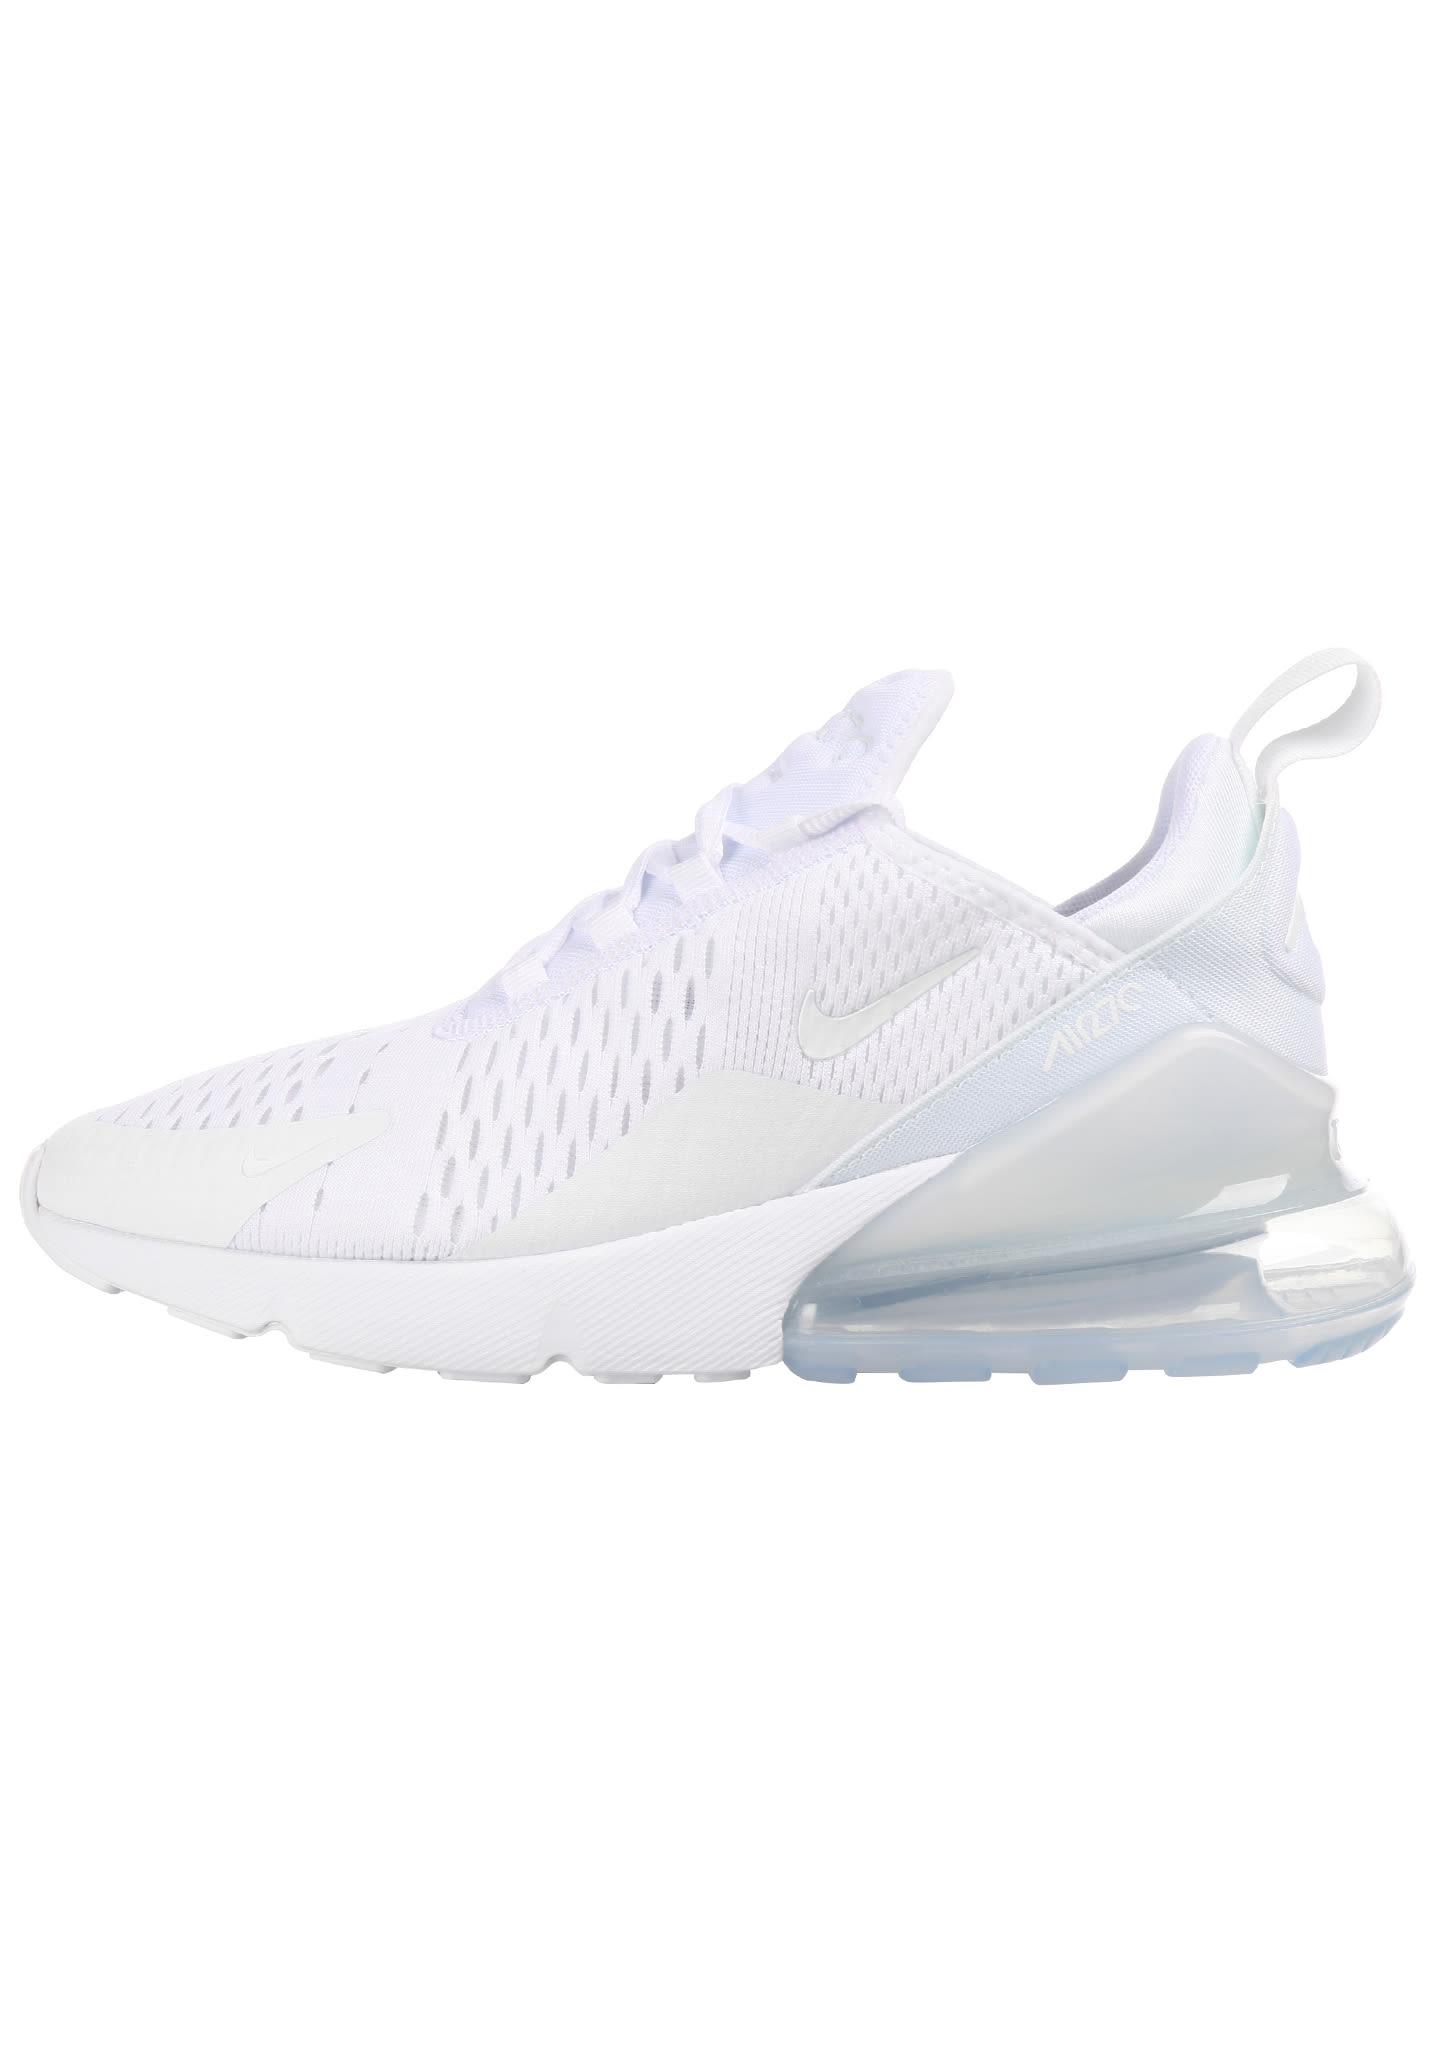 Nike Air Max 270 WWC France White CJ4580100